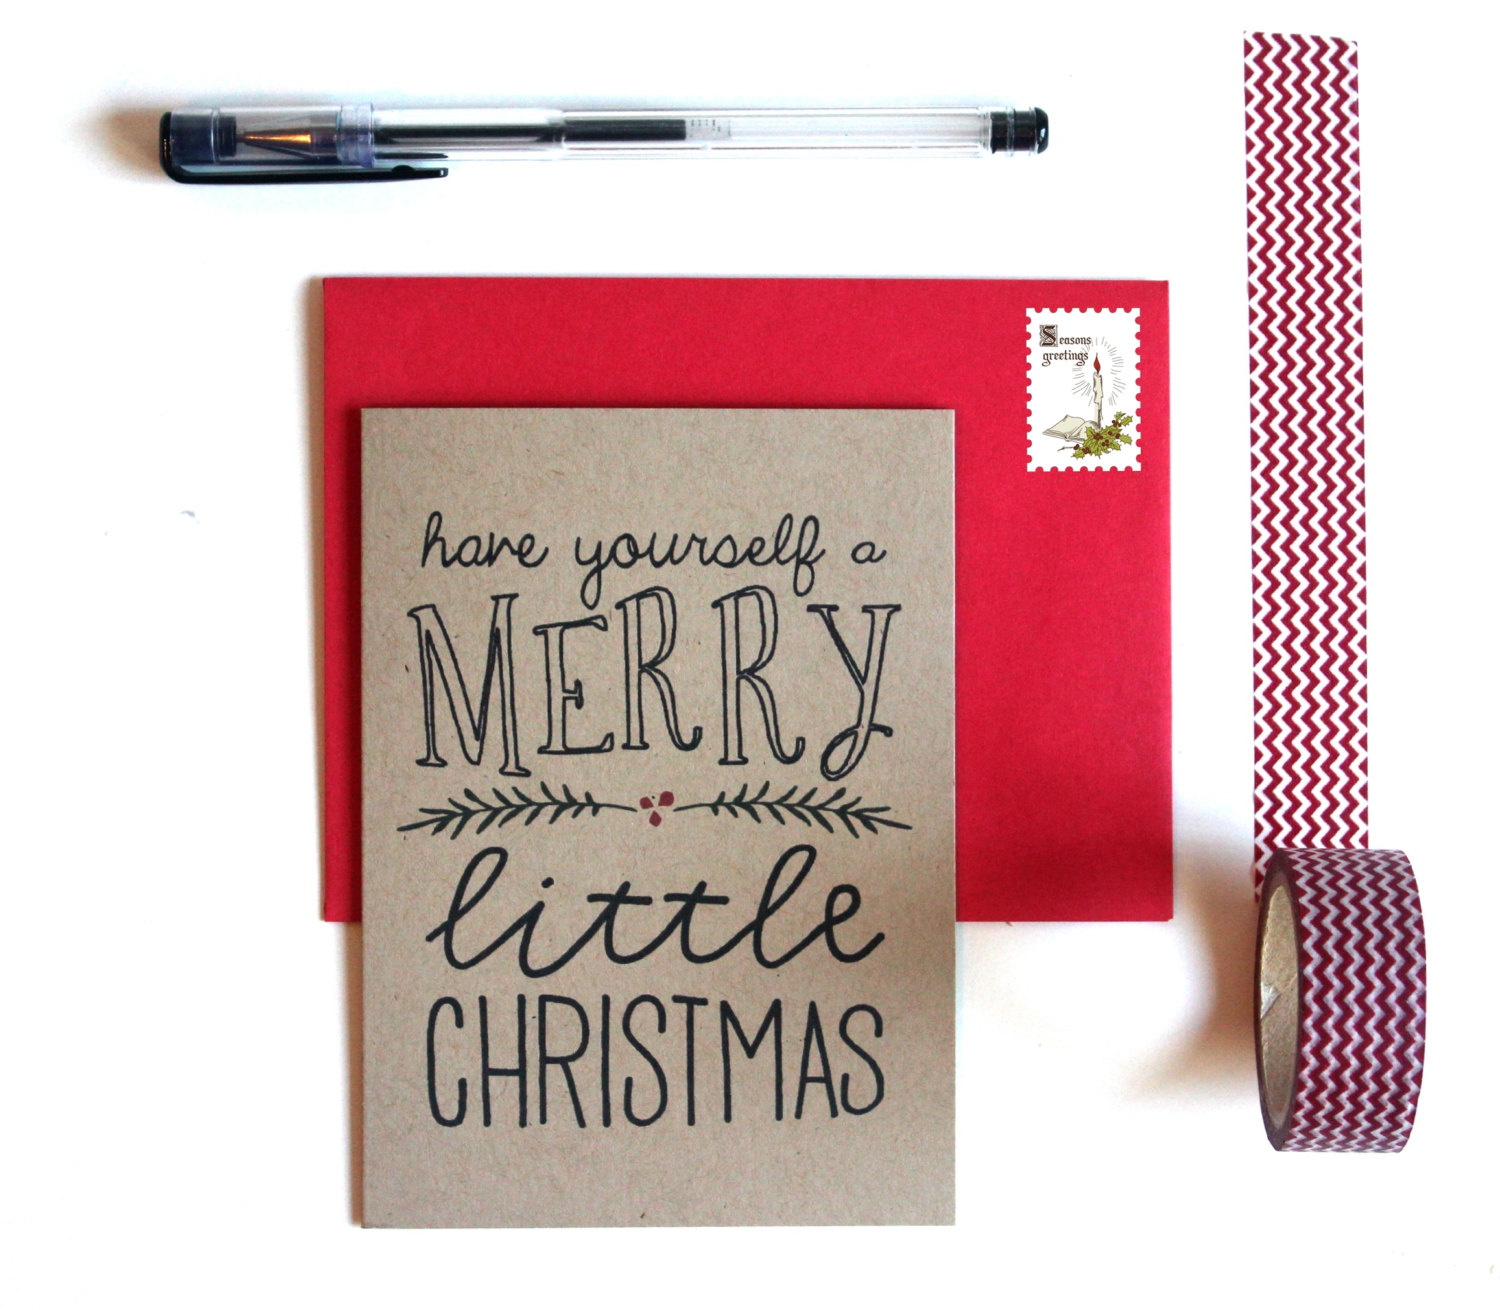 12 Holiday Cards For Everyone On Your List, Because Sending a \